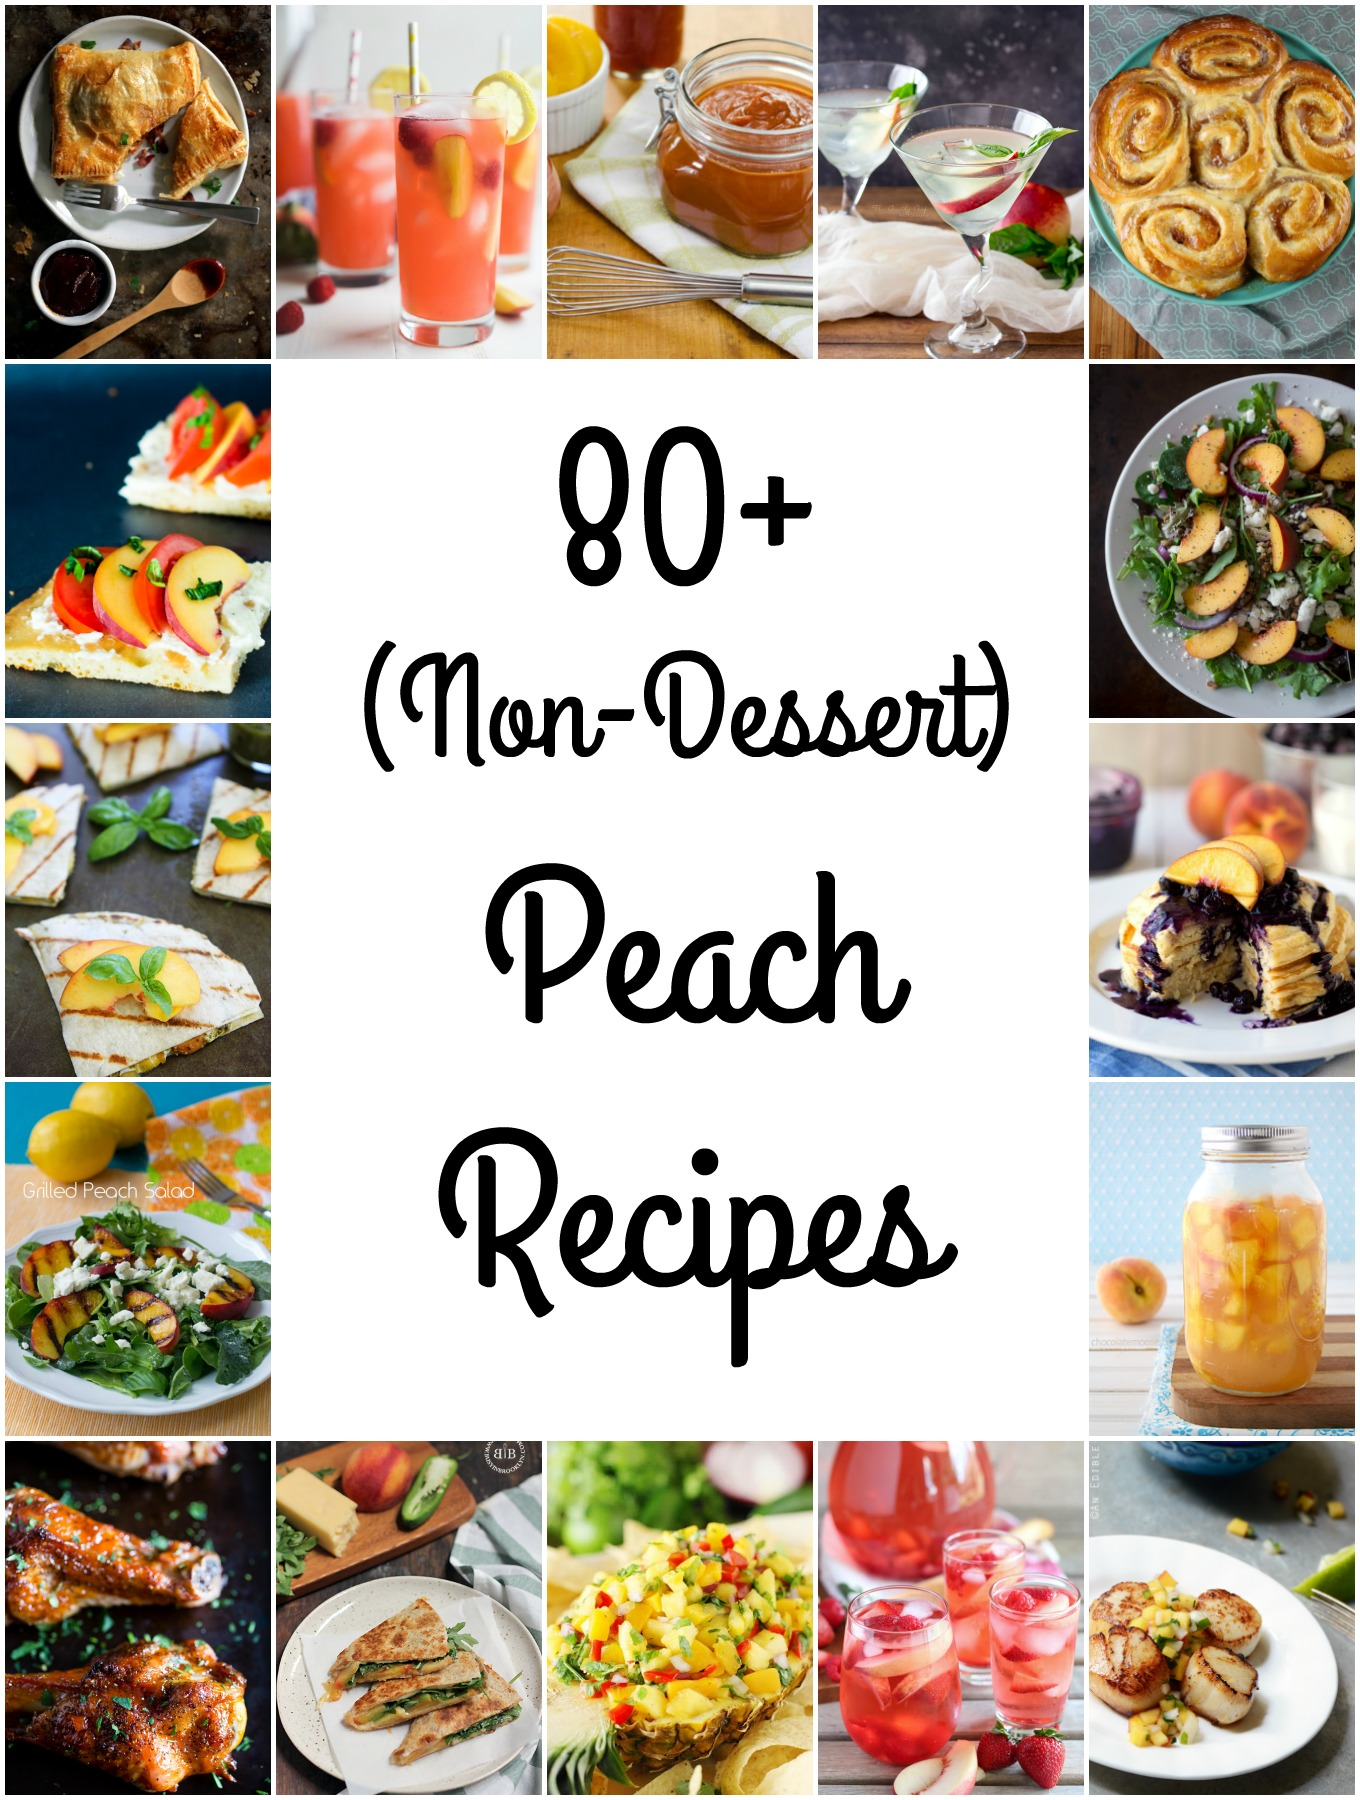 I've compiled over 80 peach recipes featuring the fruit in appetizers, breakfasts, condiments, drinks, main dishes and sides for National Peach Month.